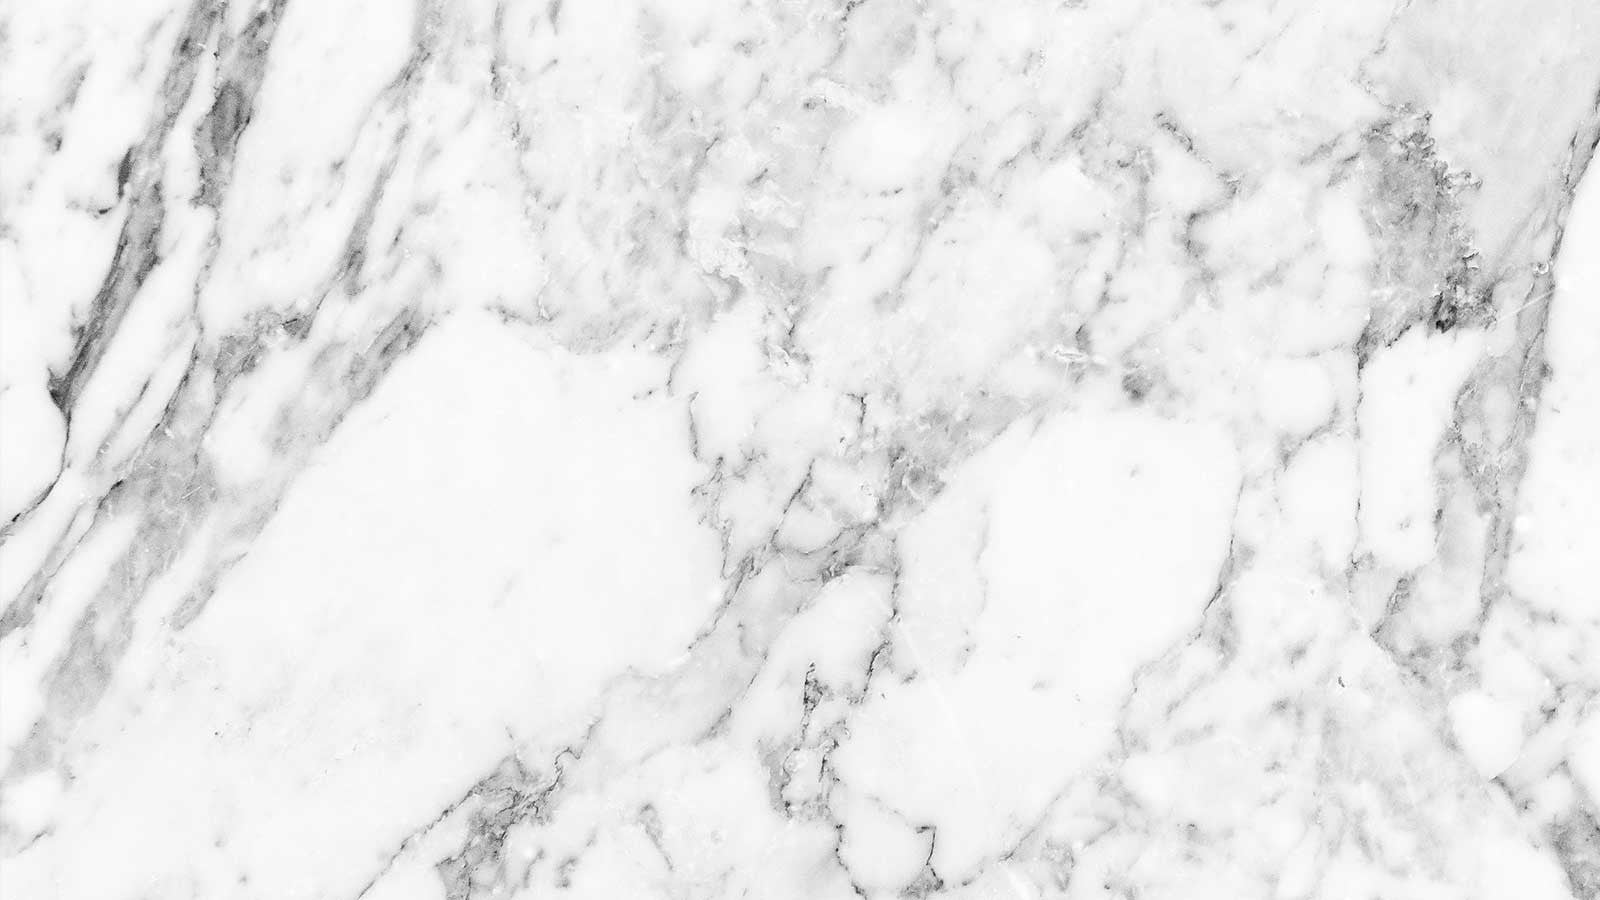 White Marble Tumblr : Marble macbook elΞmnt